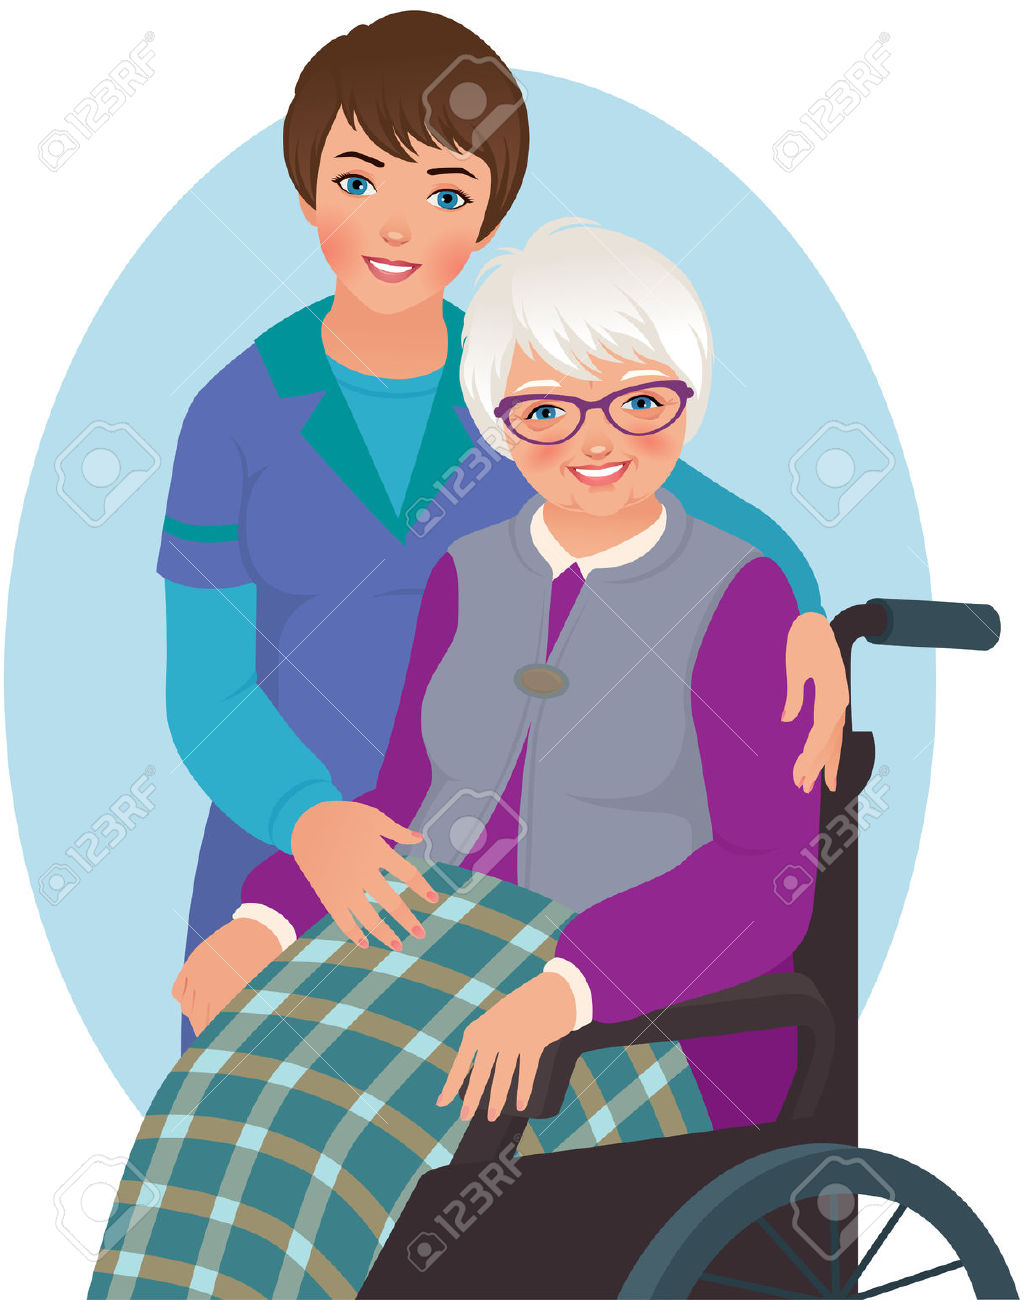 Clipart aide personnes agees.